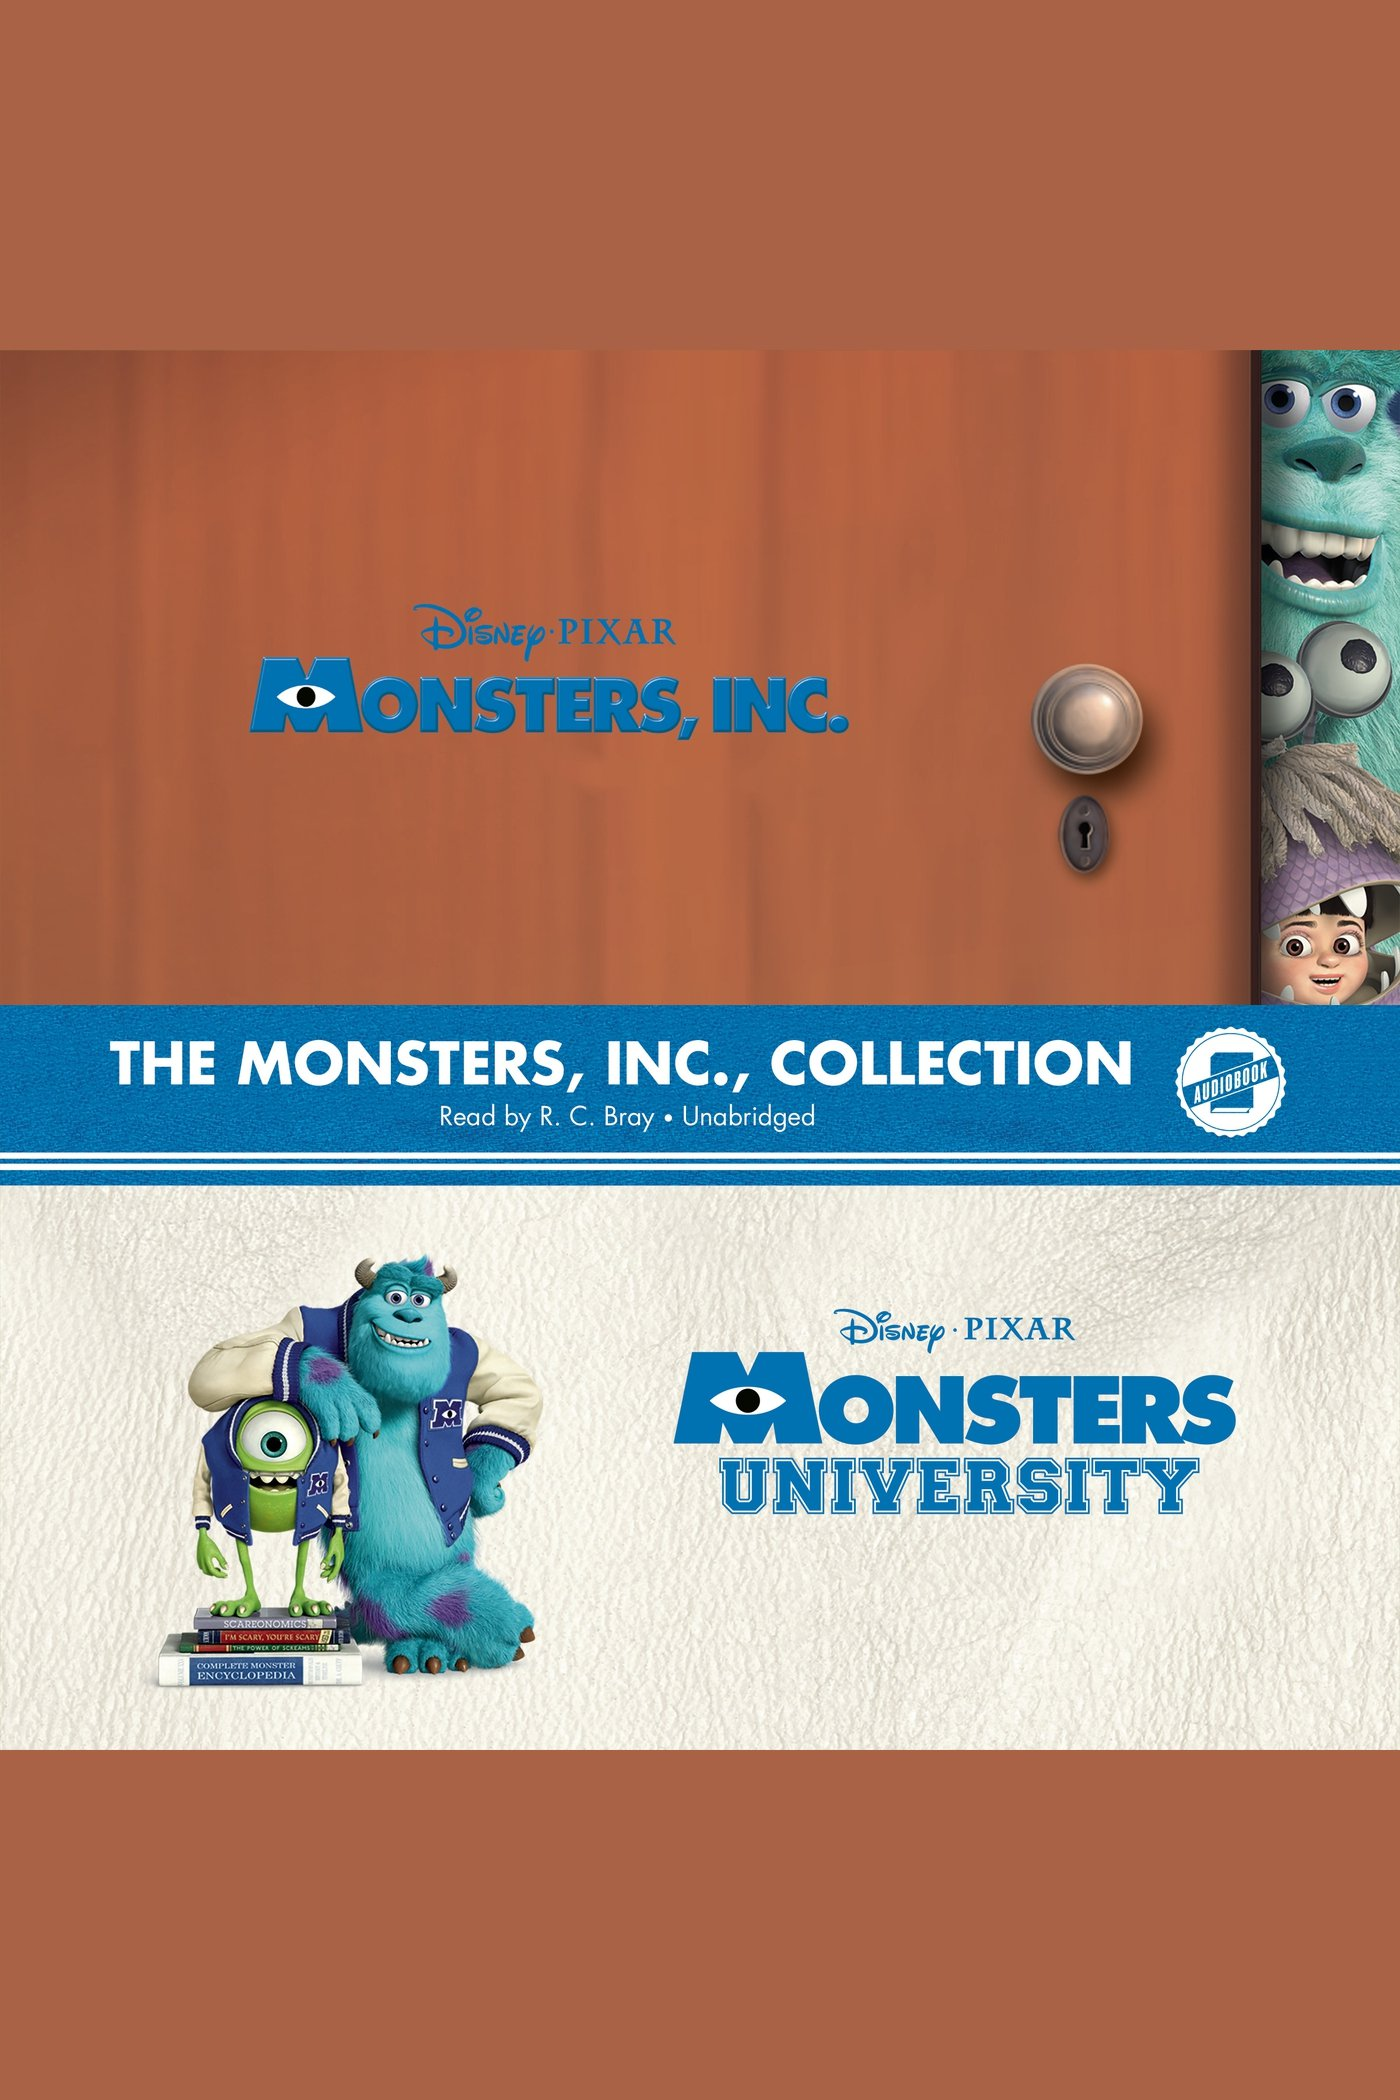 The Monsters, Inc. Monsters University cover image